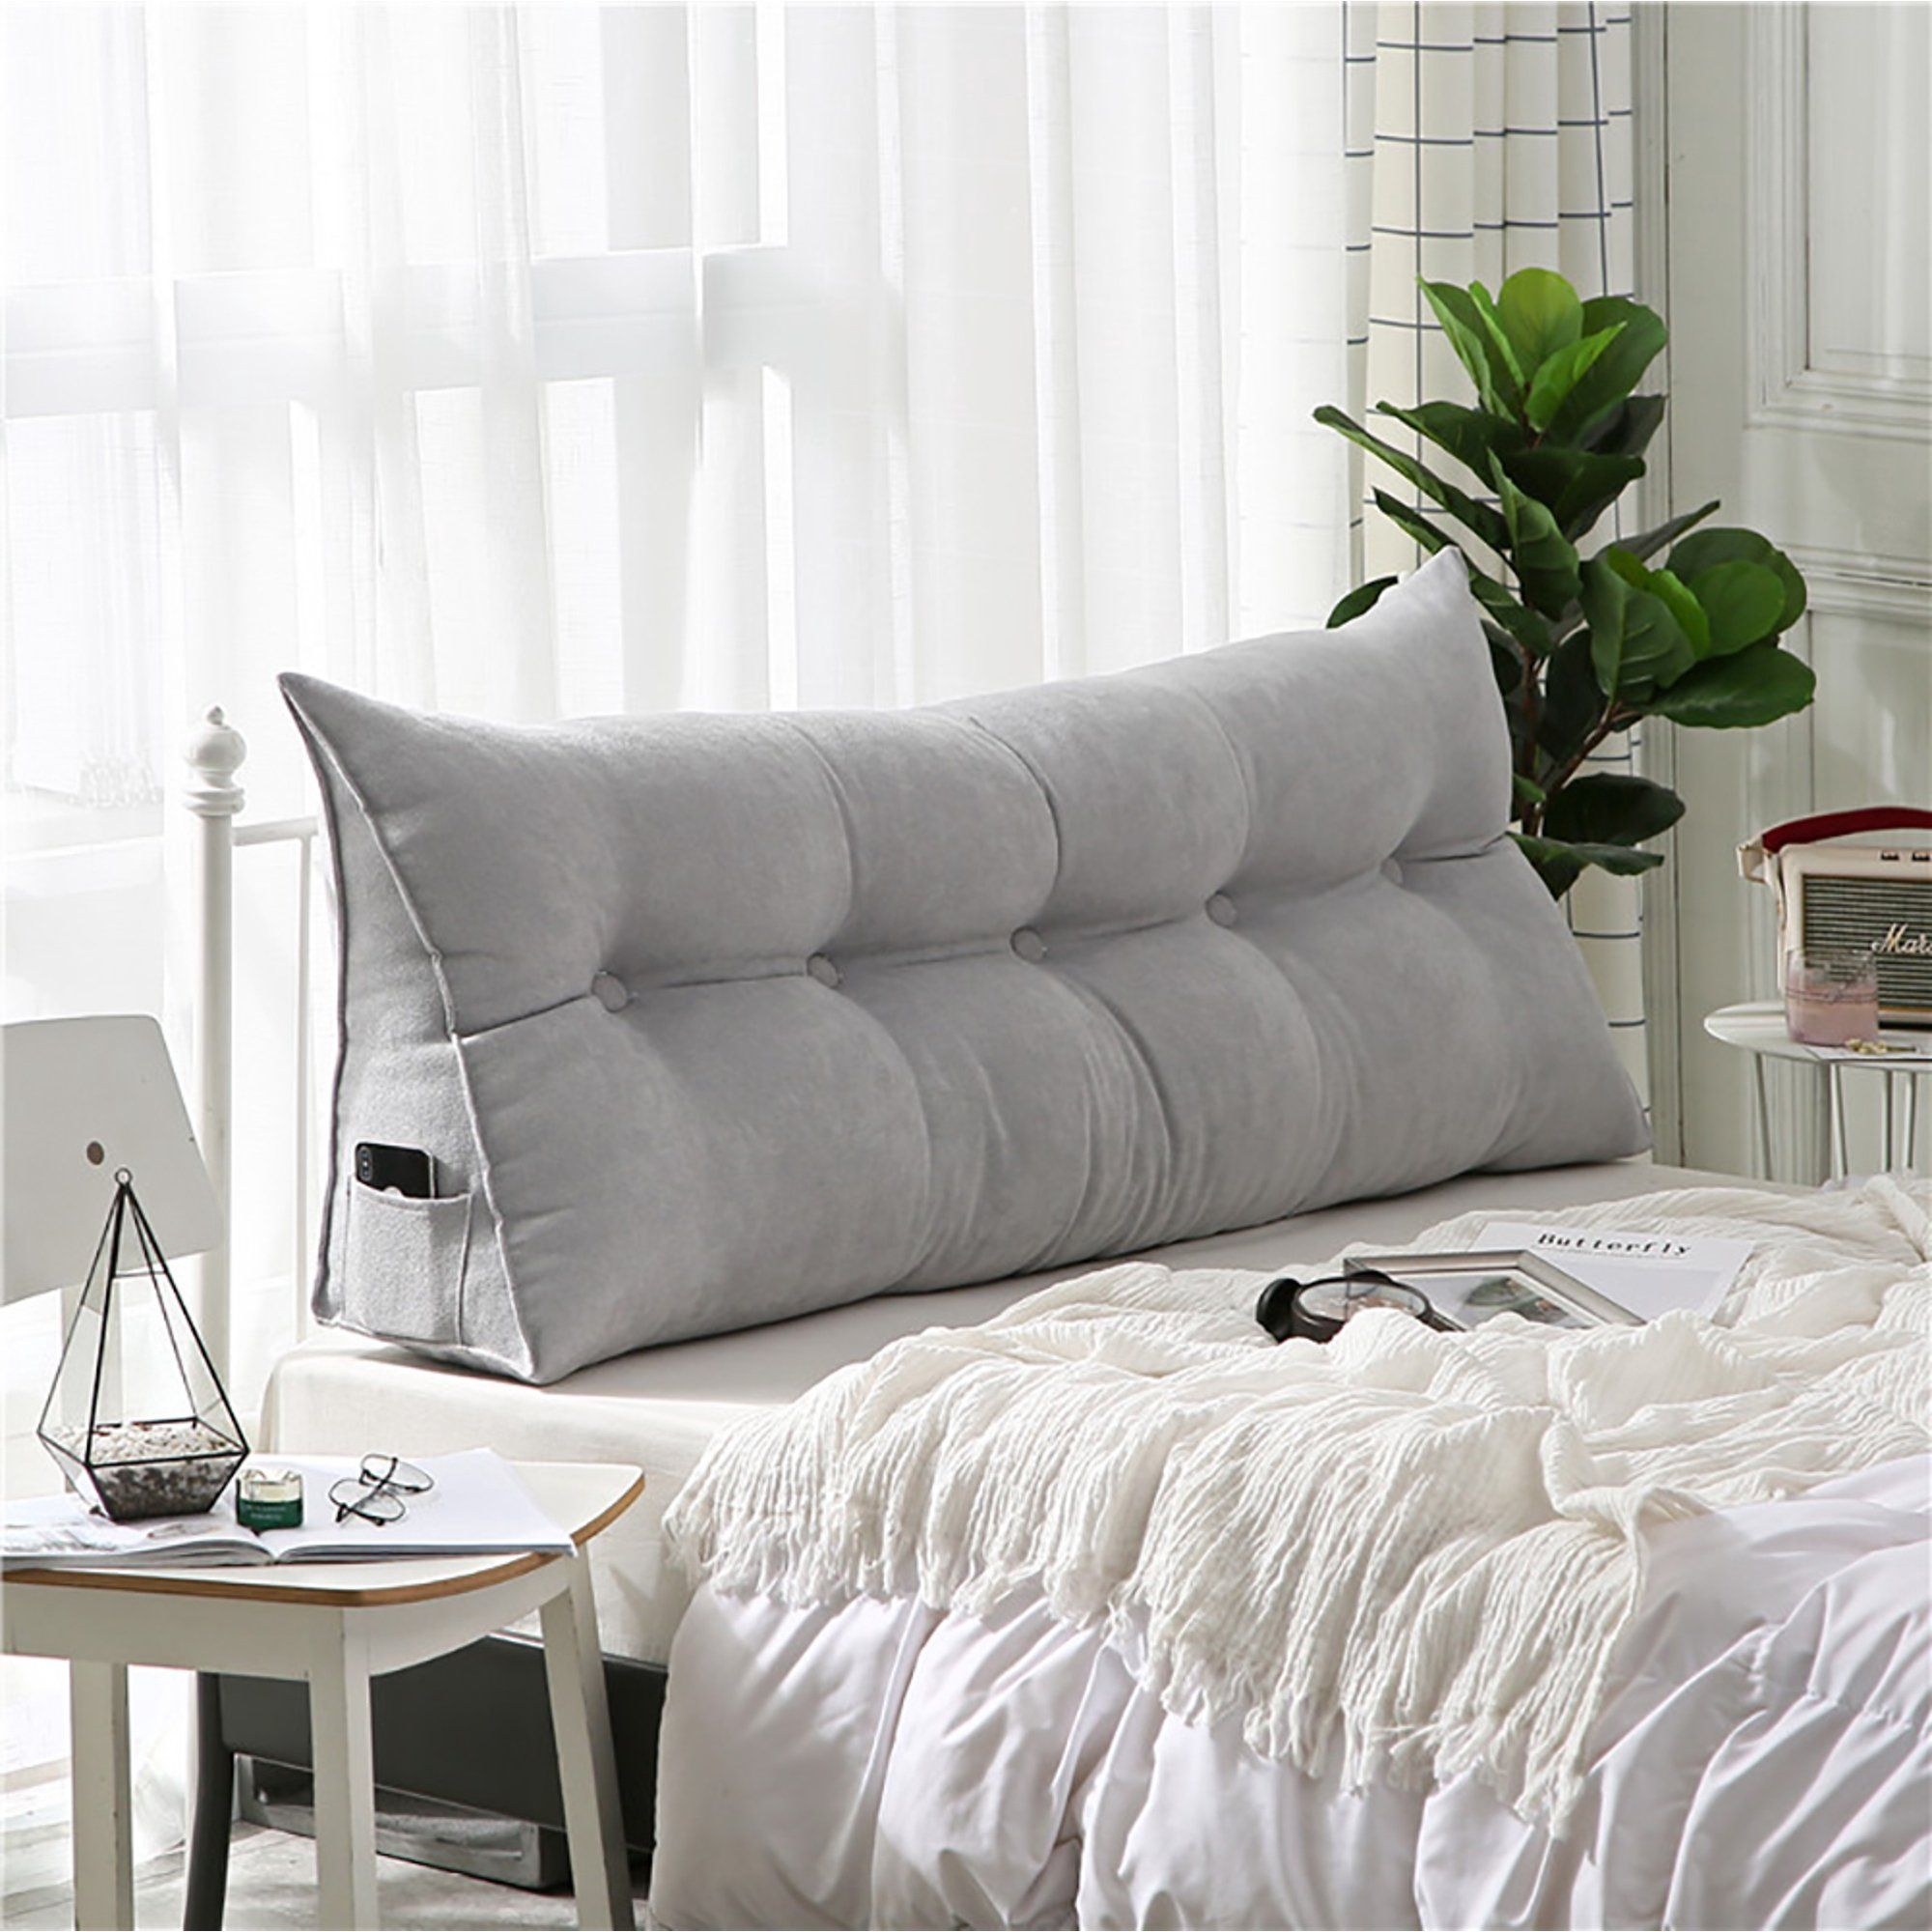 wedge pillow headboard for day bed